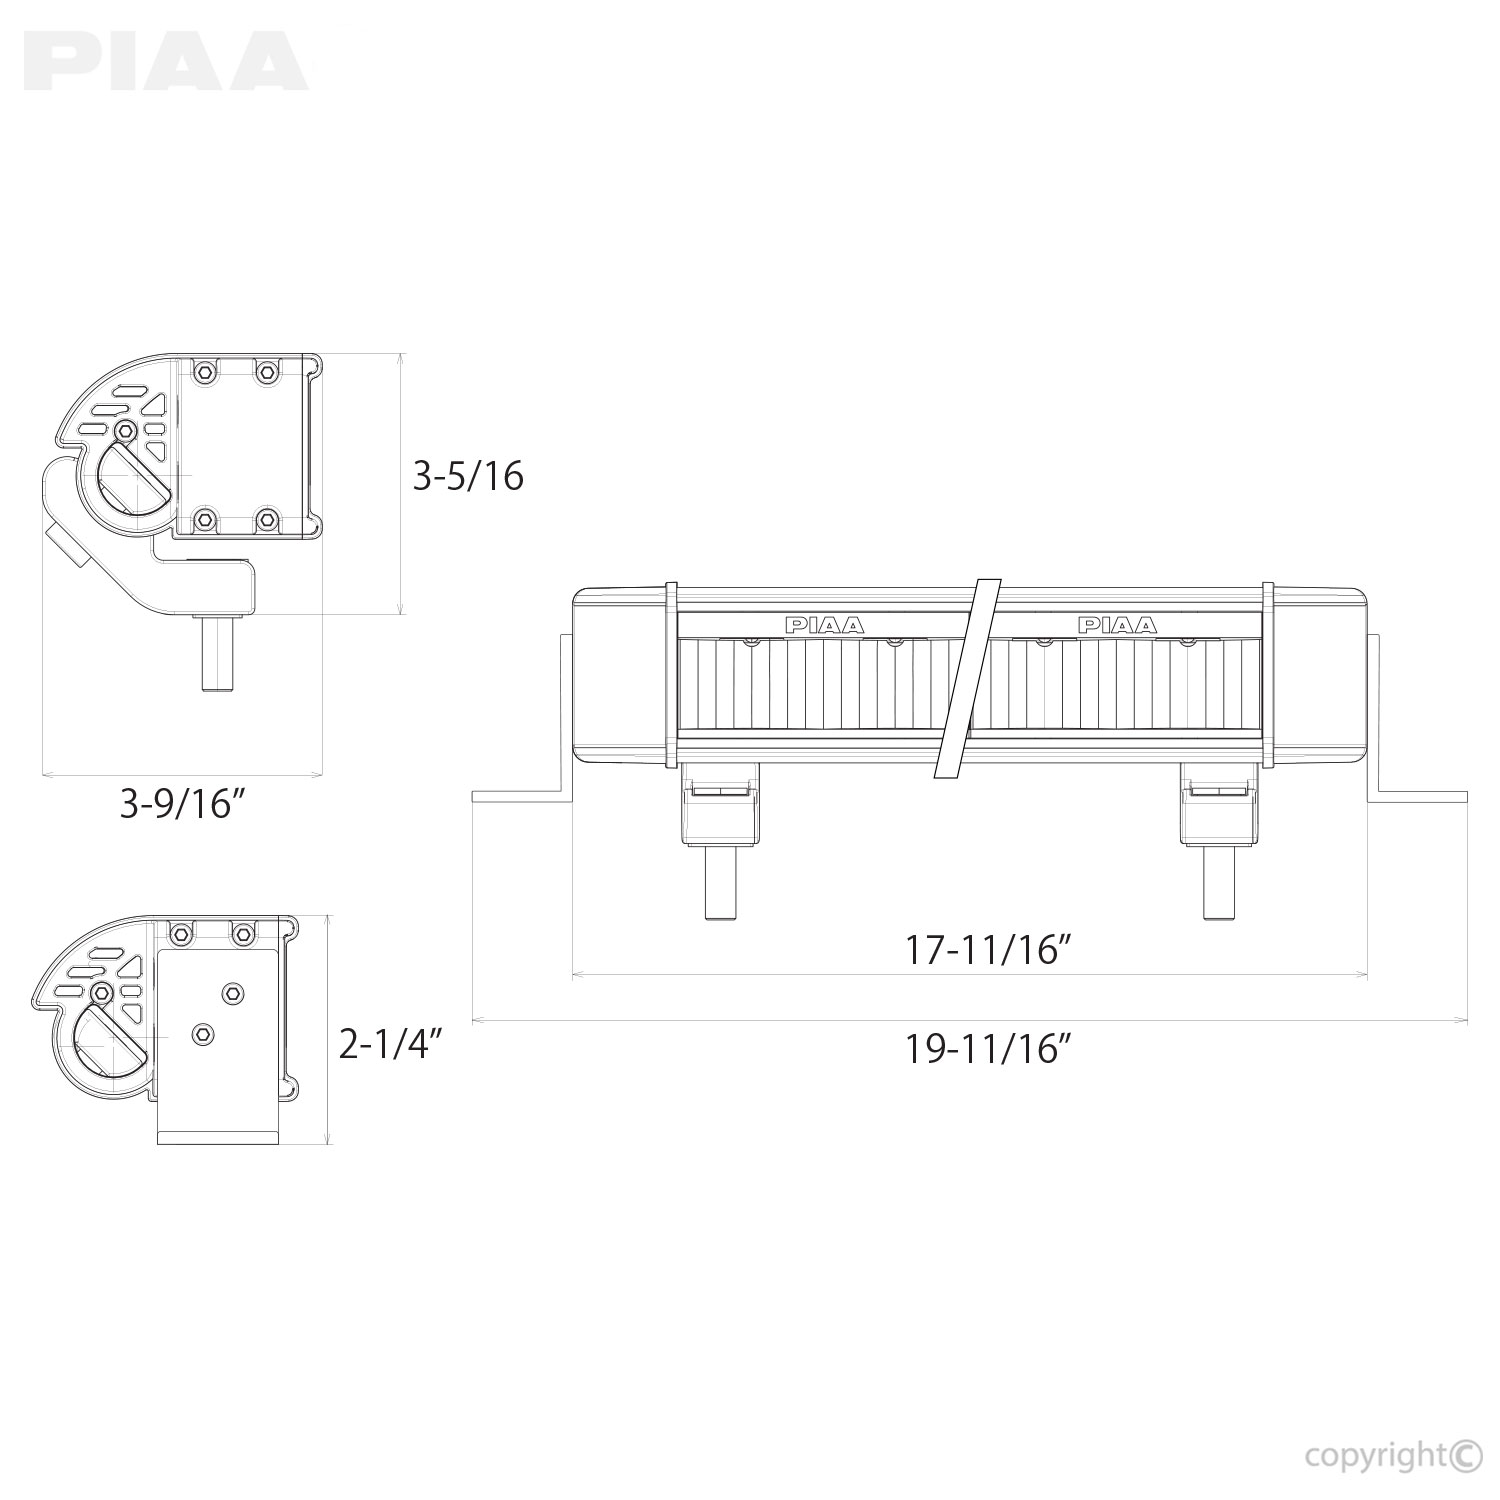 Piaa Wiring Harness Diagram Solutions Mlr 4e Electrical Work